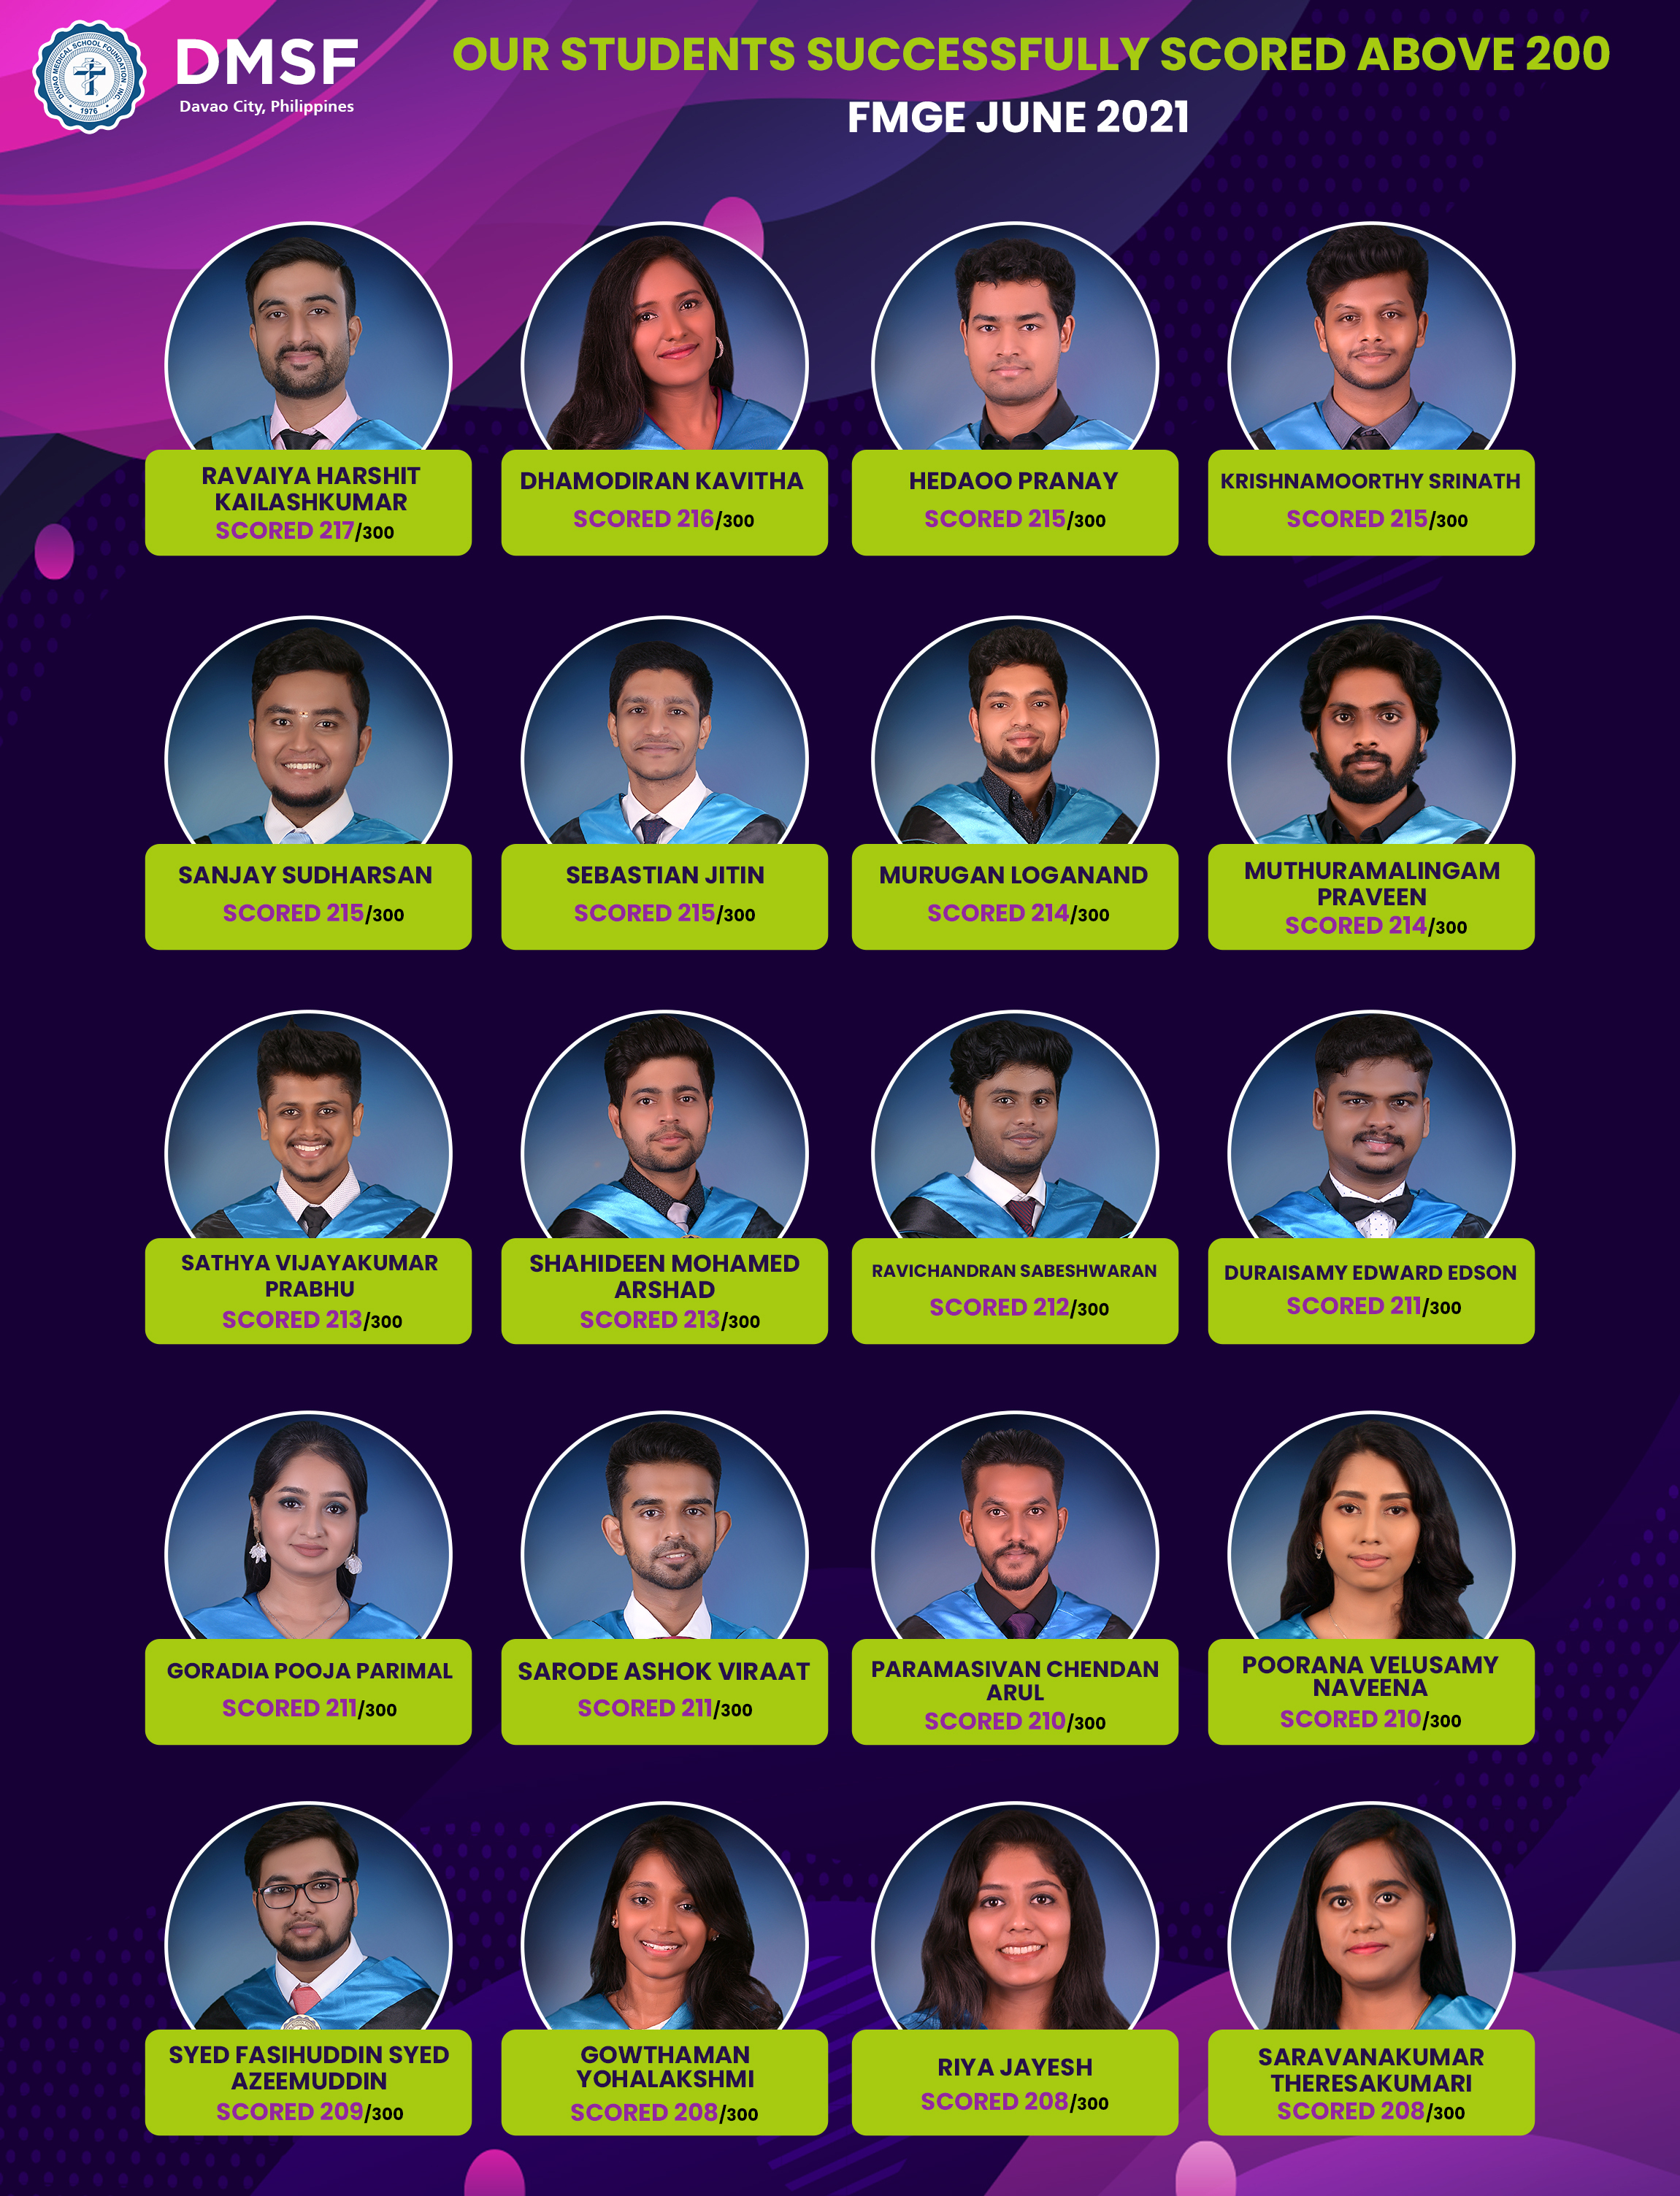 Students of DMSF who scored above 200 at FMGE June 2021